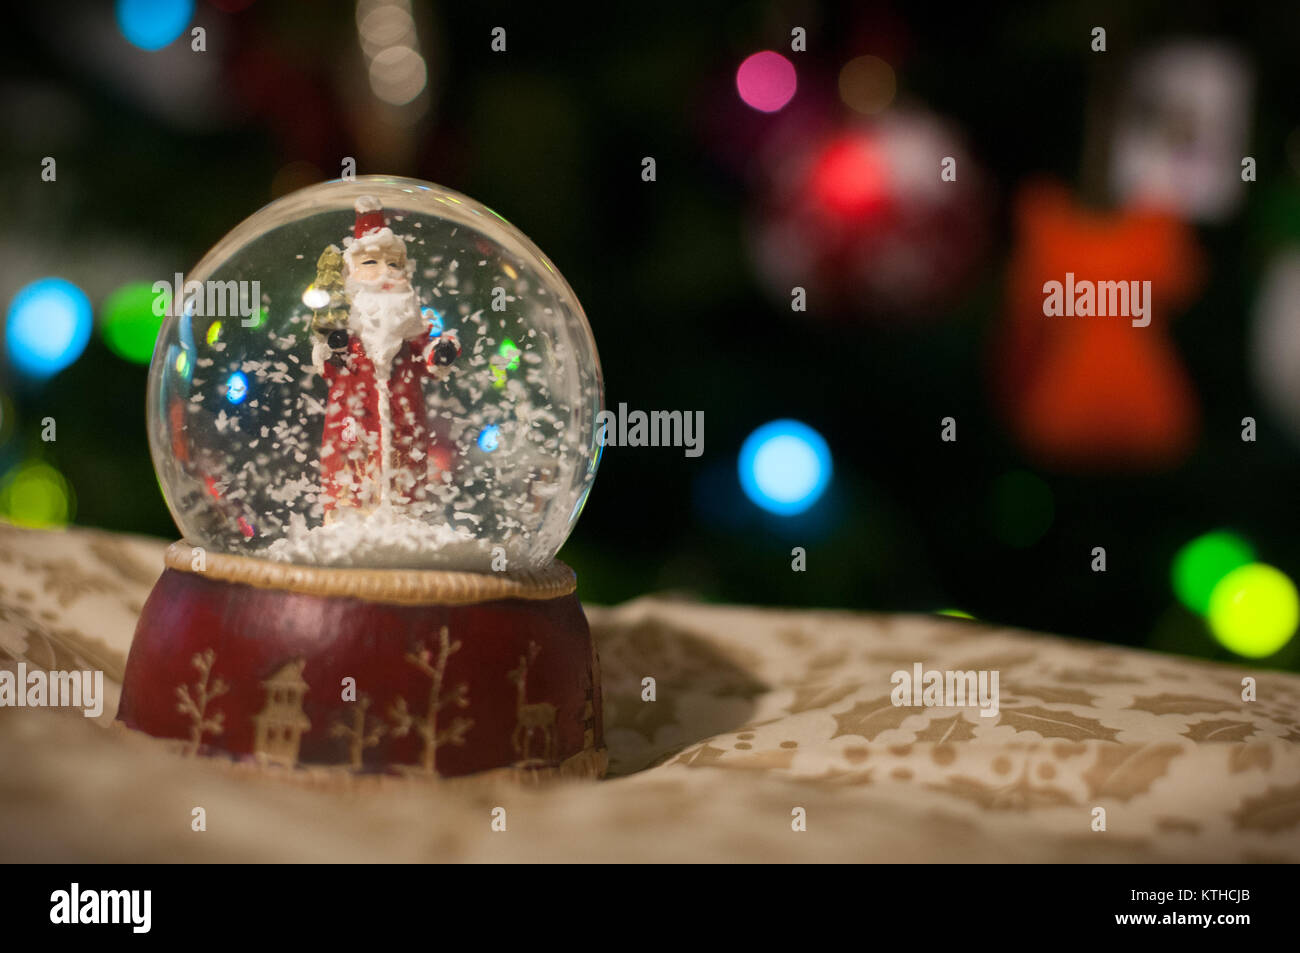 a-crystal-ball-with-santa-claus-inside-K